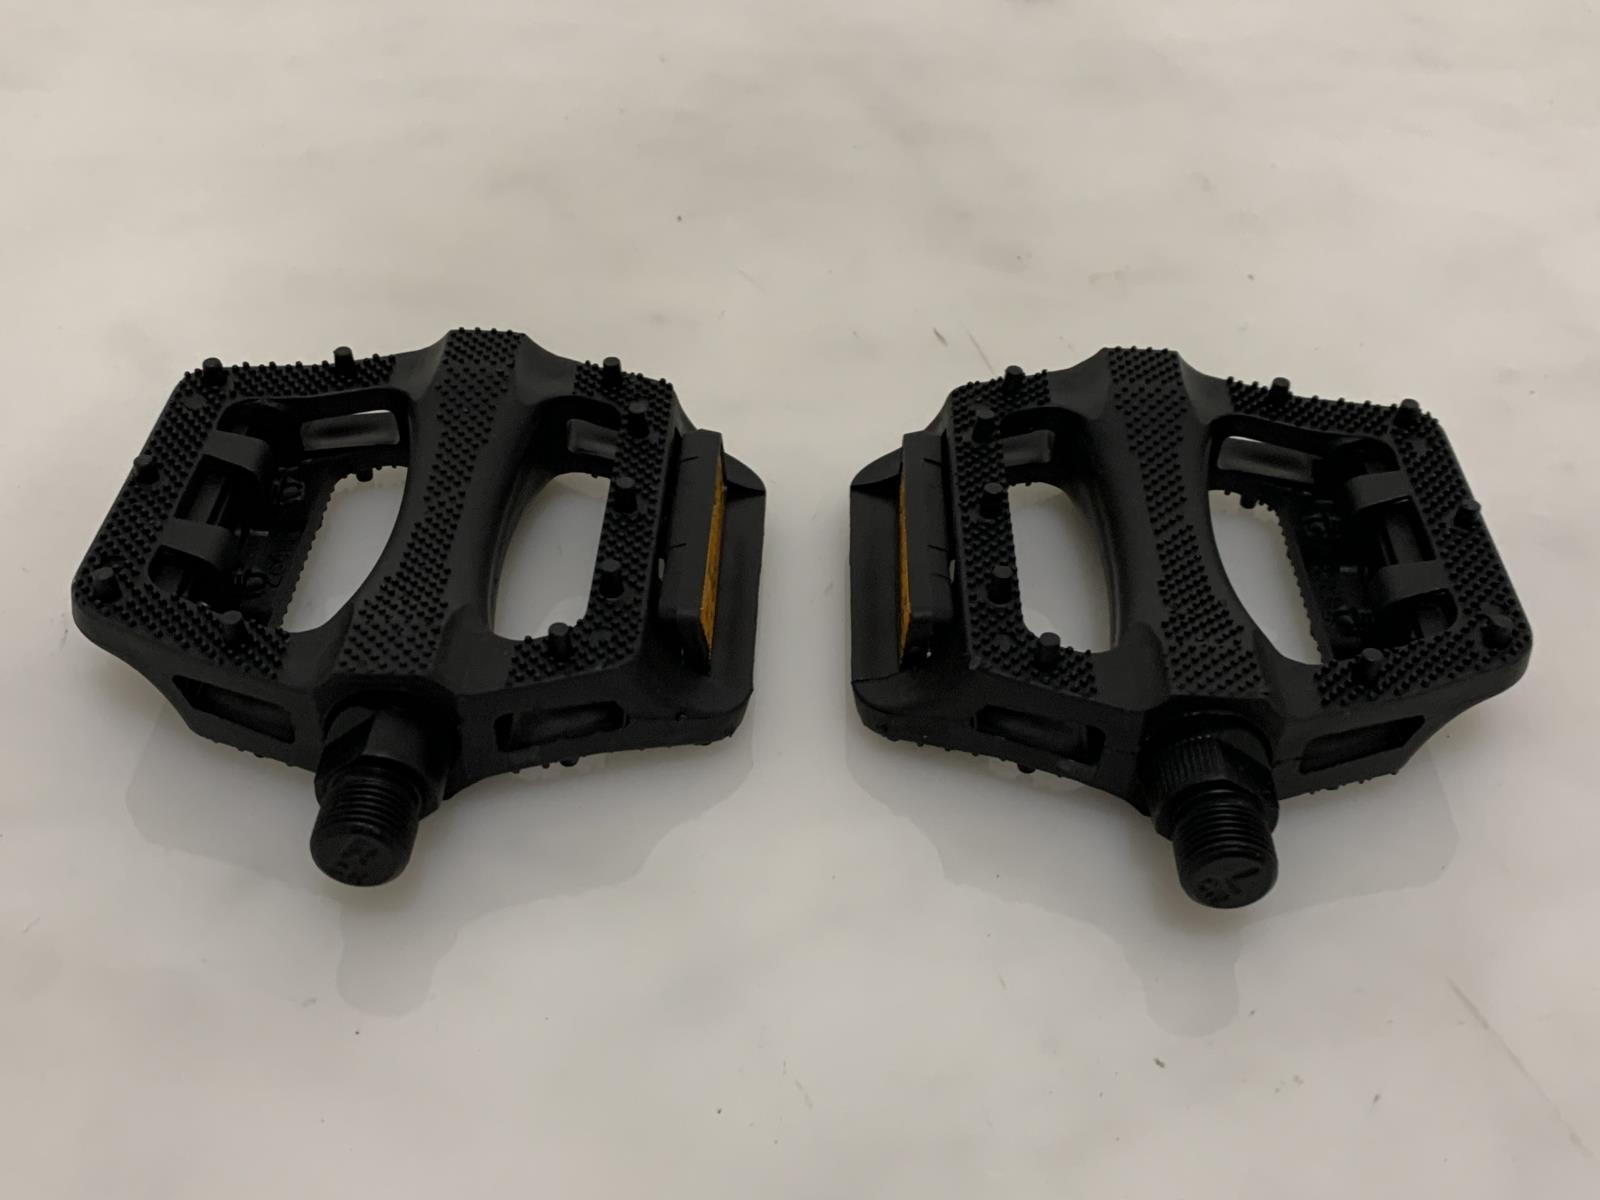 "FPO RESIN PLATFORM 9/16"" MTB Bike Bicycle Cycle PEDALS NEW"